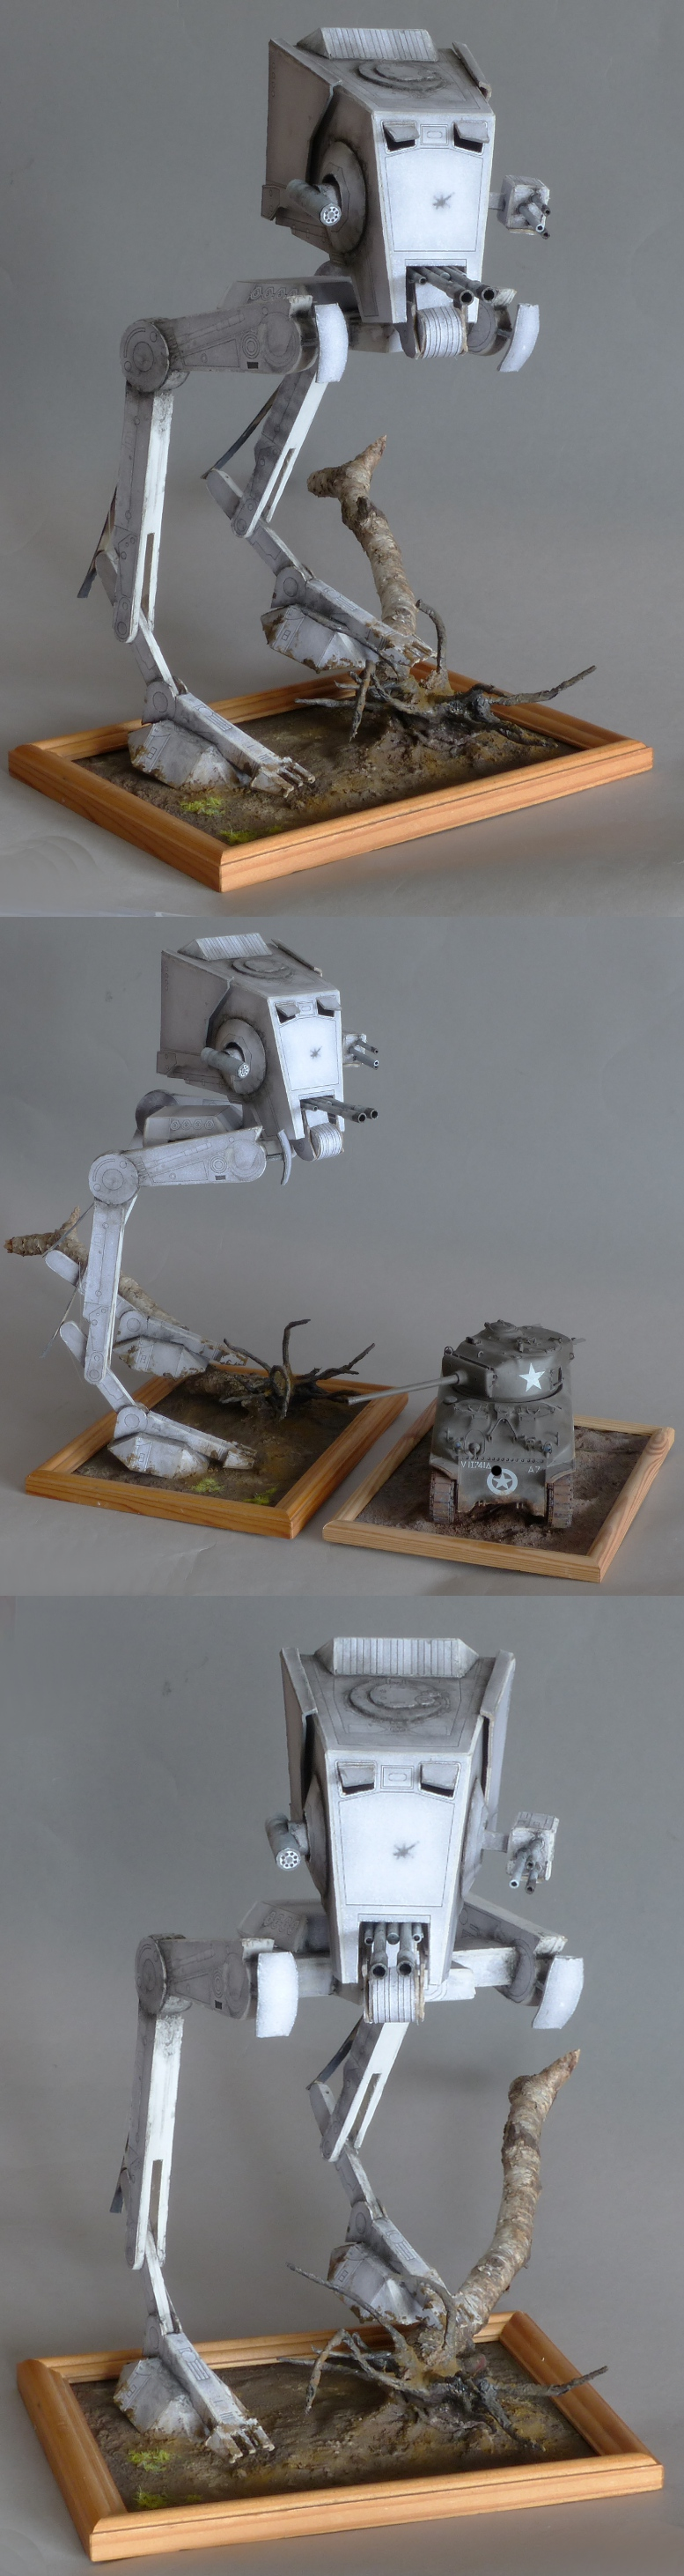 AT-ST 1/35 scale